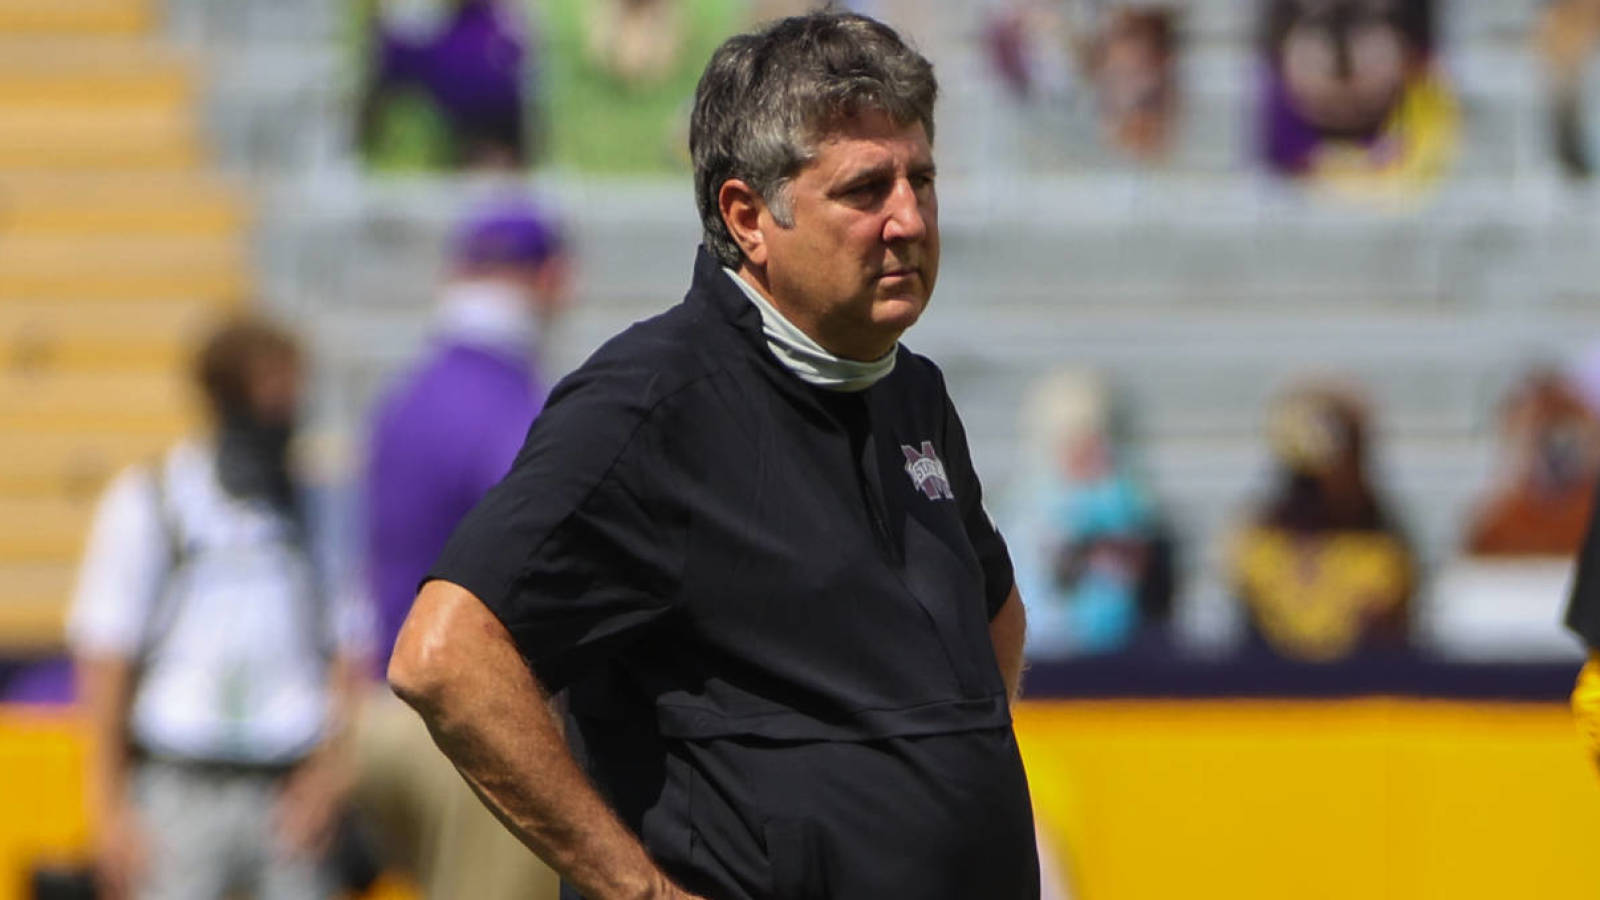 Mike Leach has deep thoughts on cardboard fan cutouts